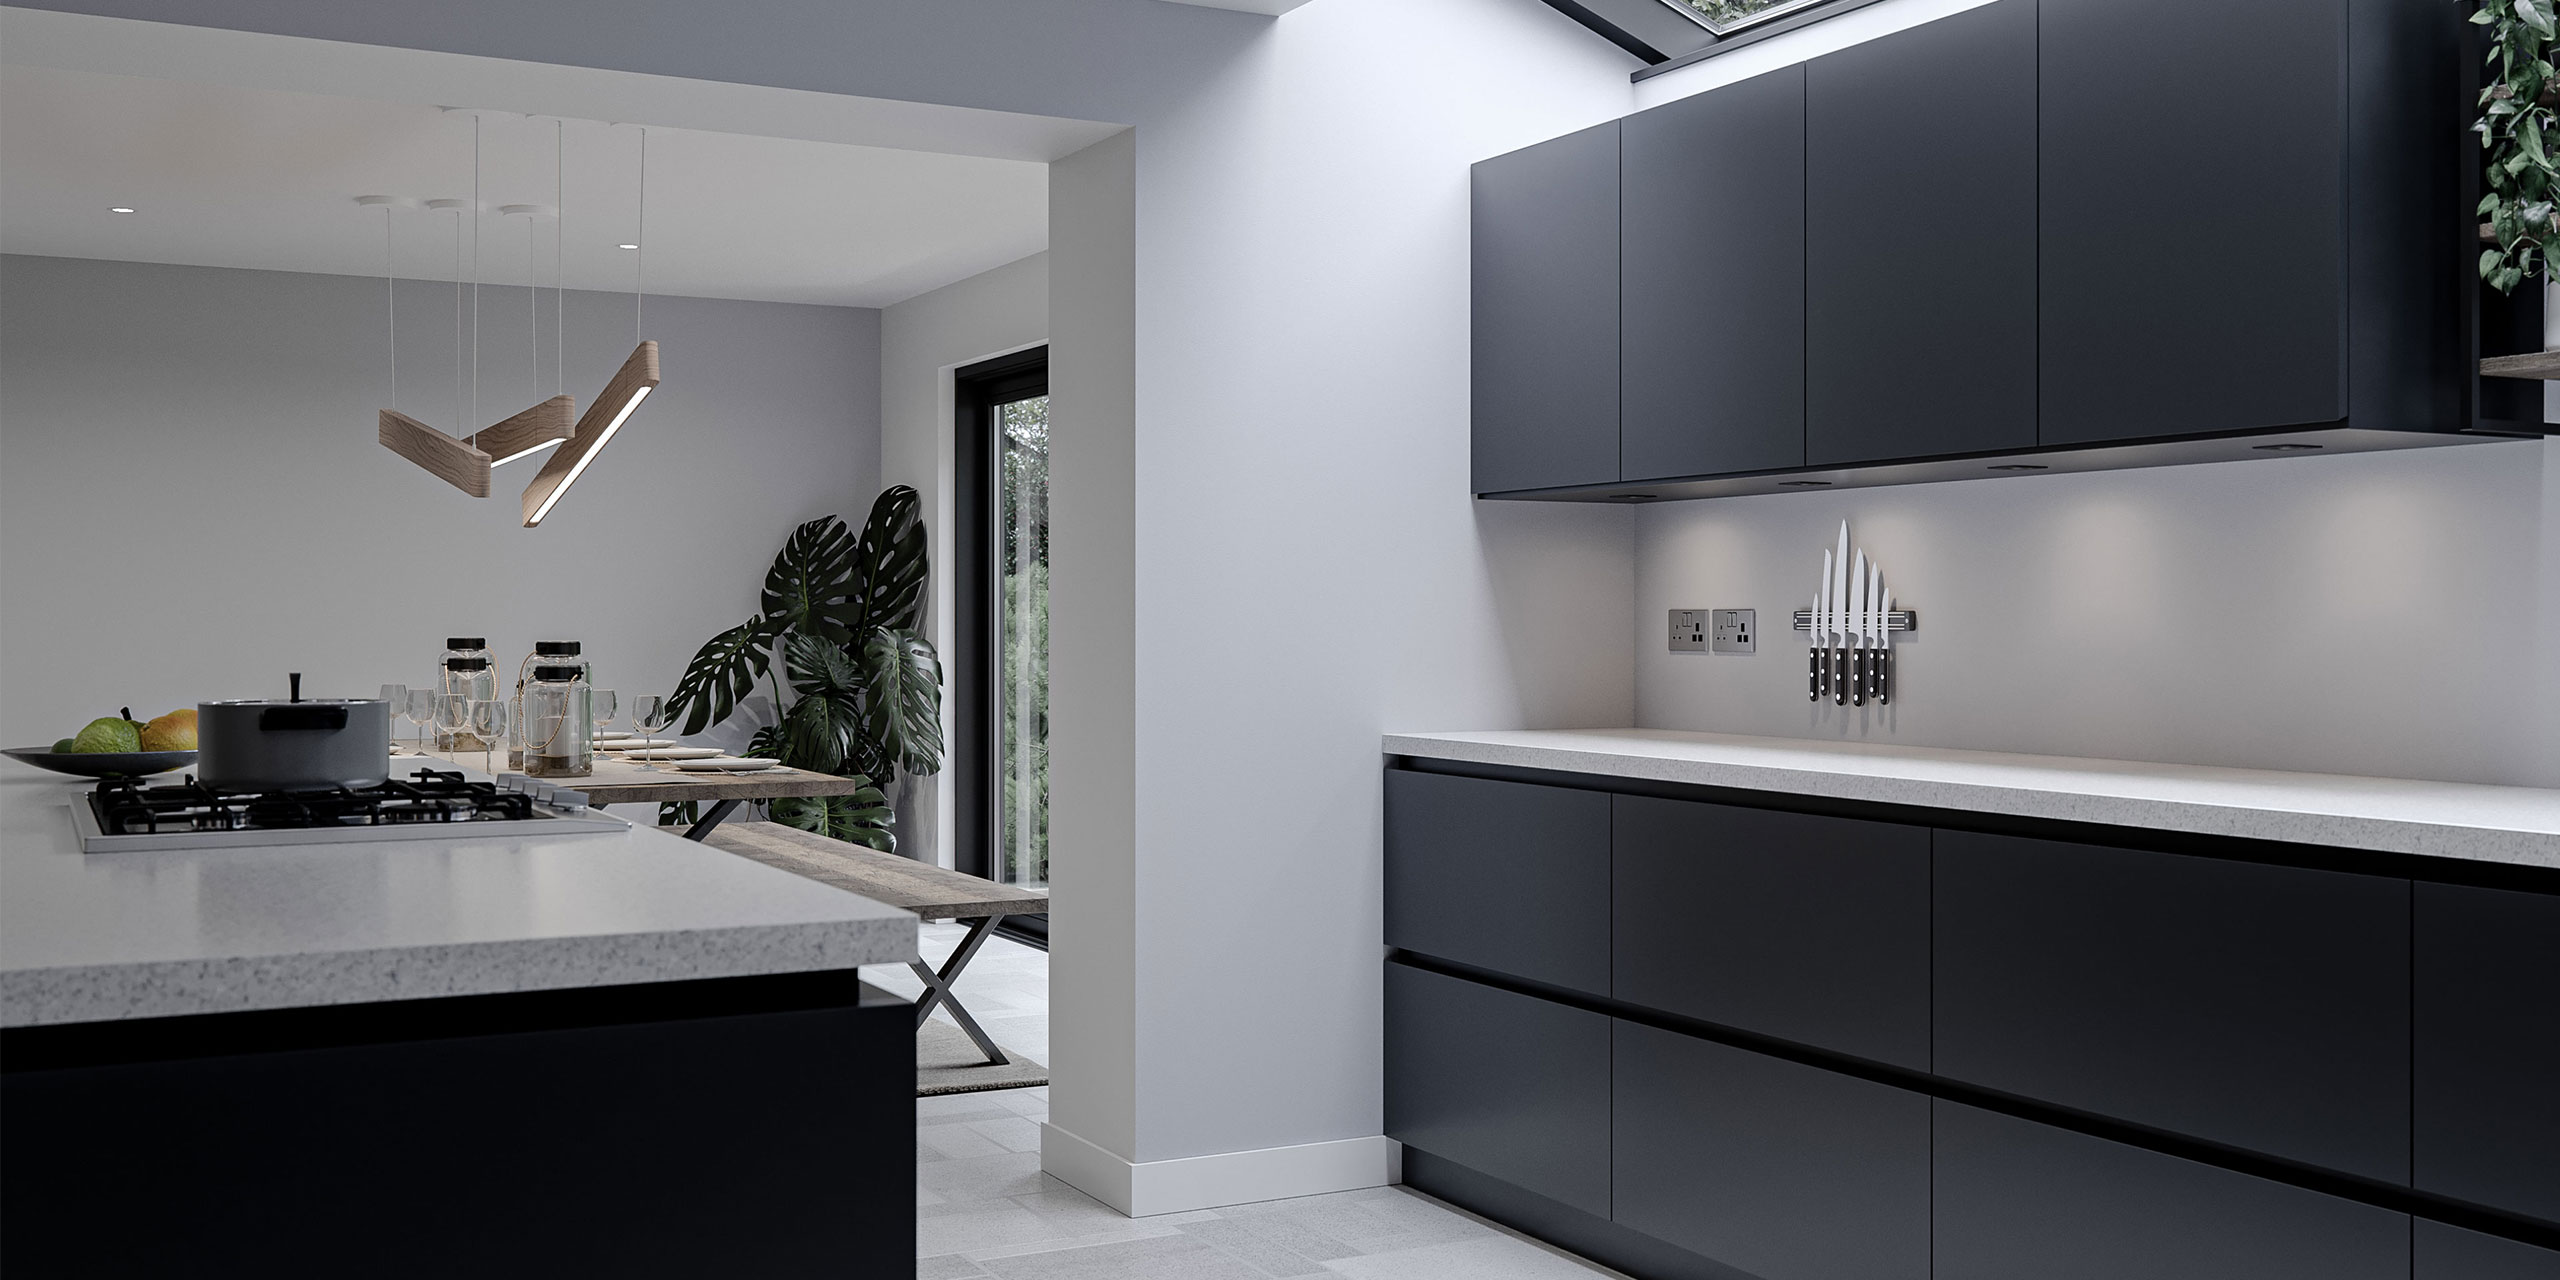 Knife Rack Kitchen Product on display in a modern kitchen - Storage Tips